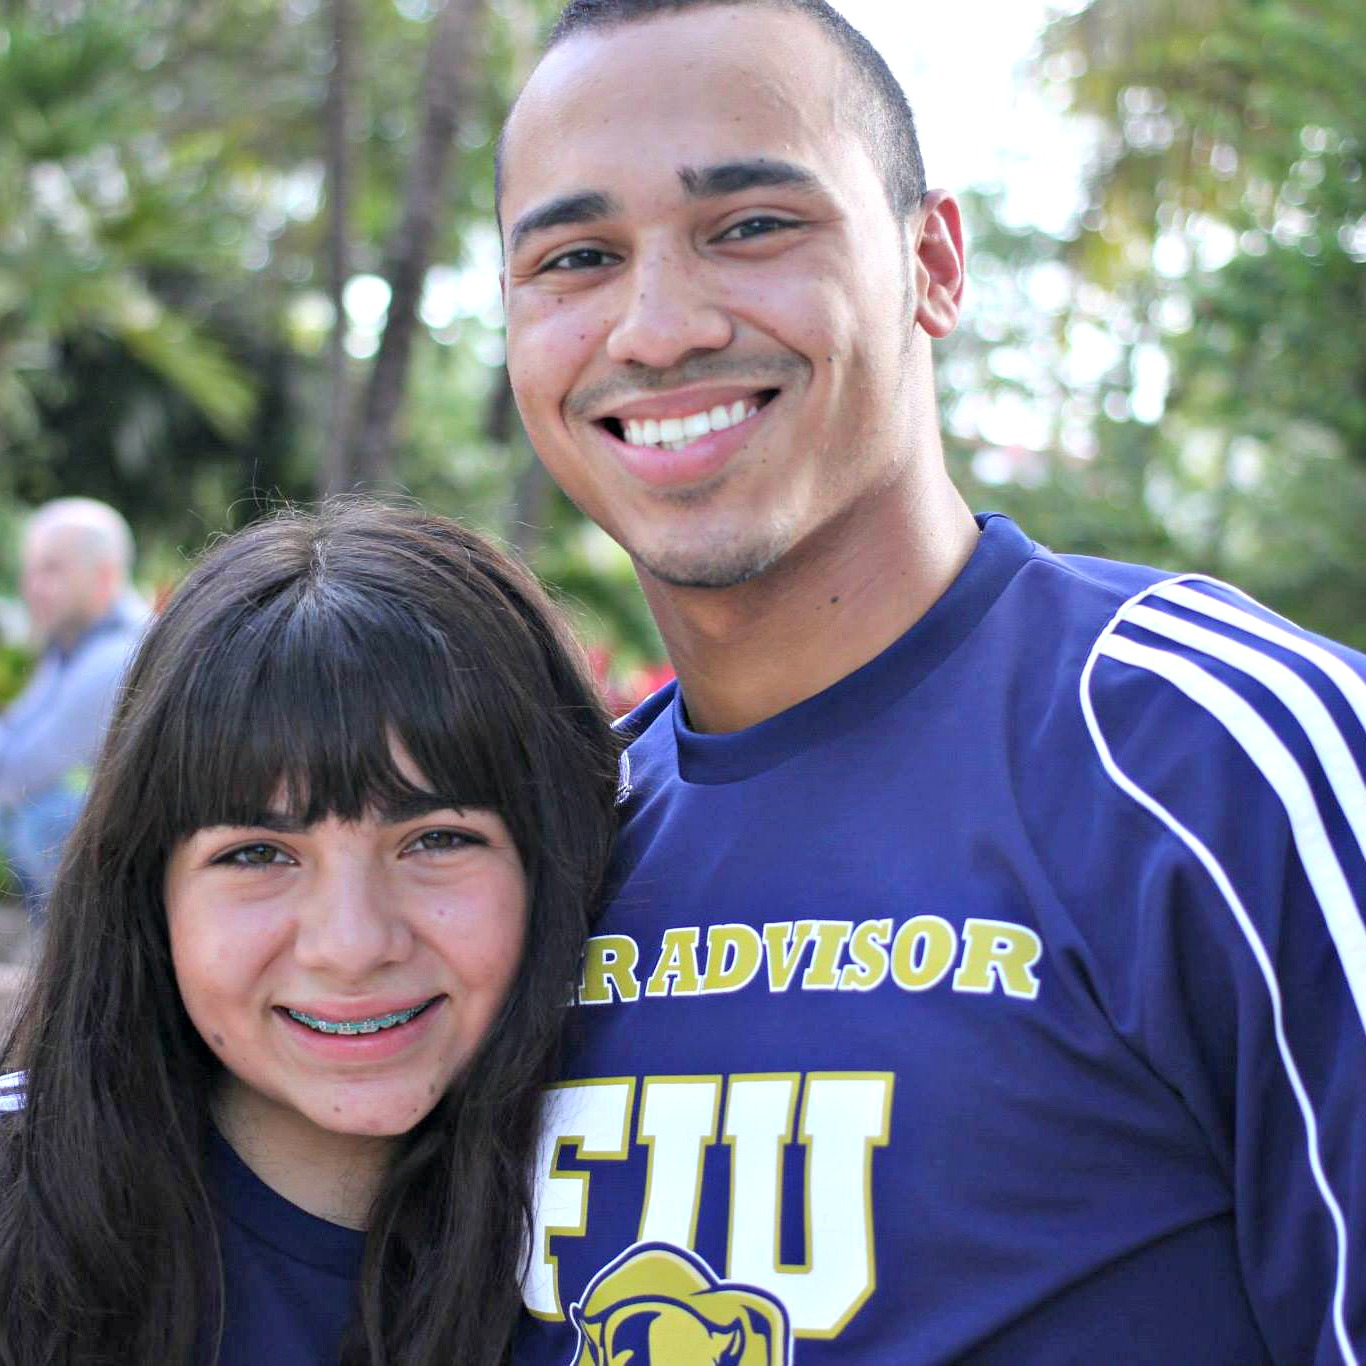 William Solis (right) with fellow peer advisor Ginelle Bou Nassar at FIU.